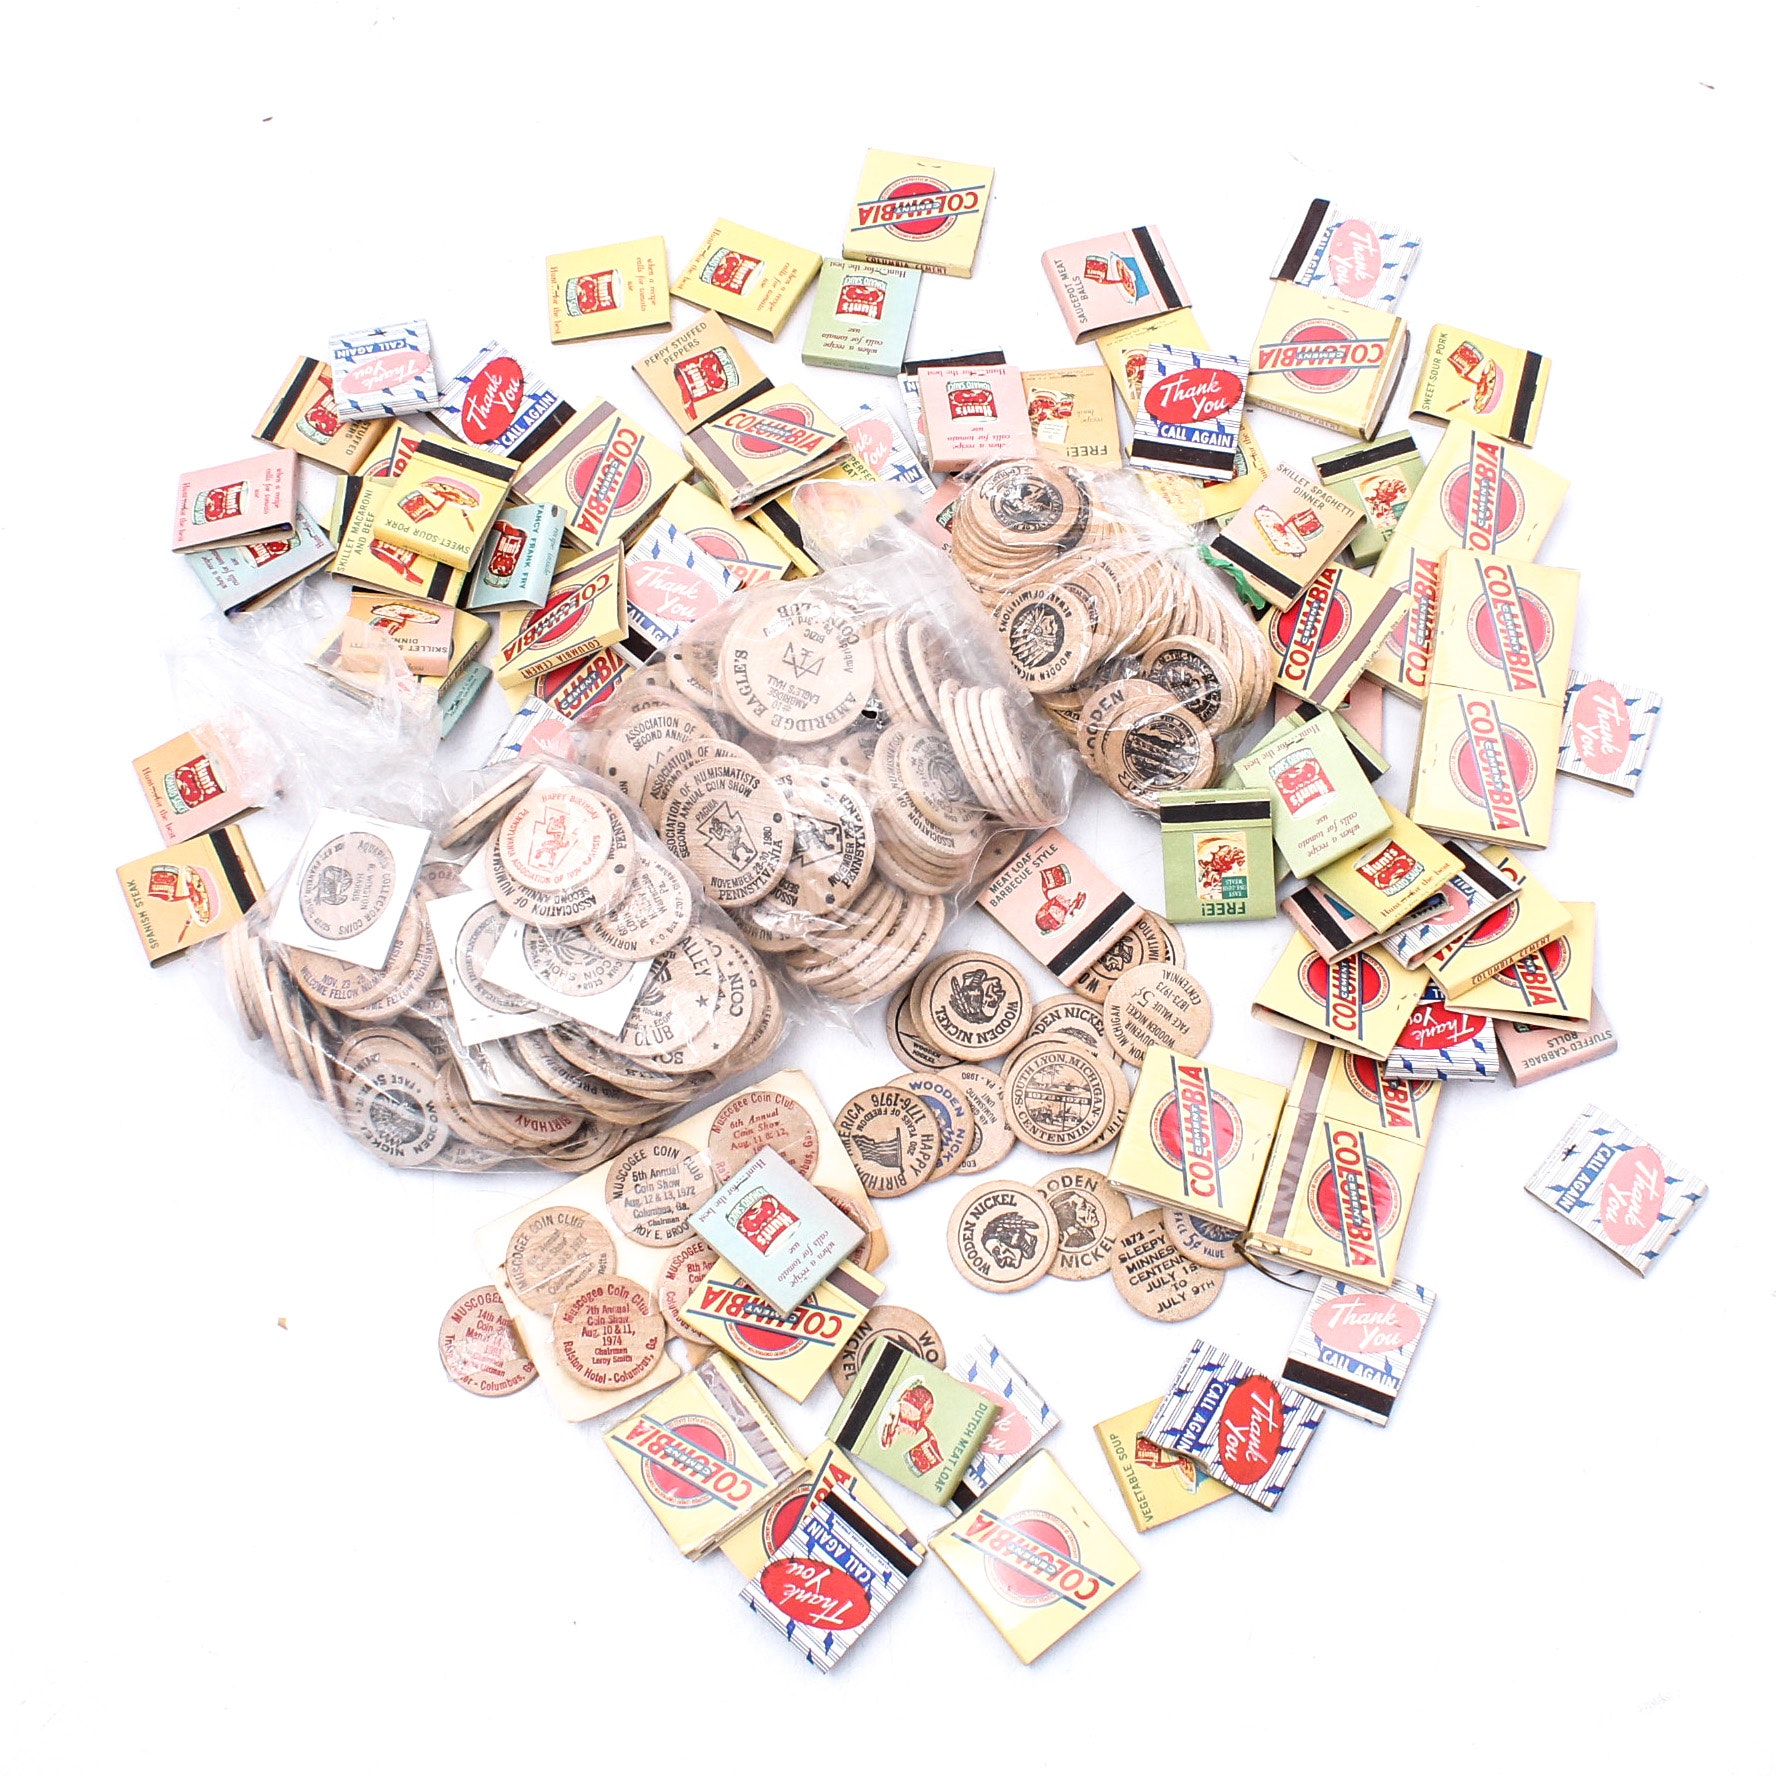 Wooden Nickels and Match Book Collection